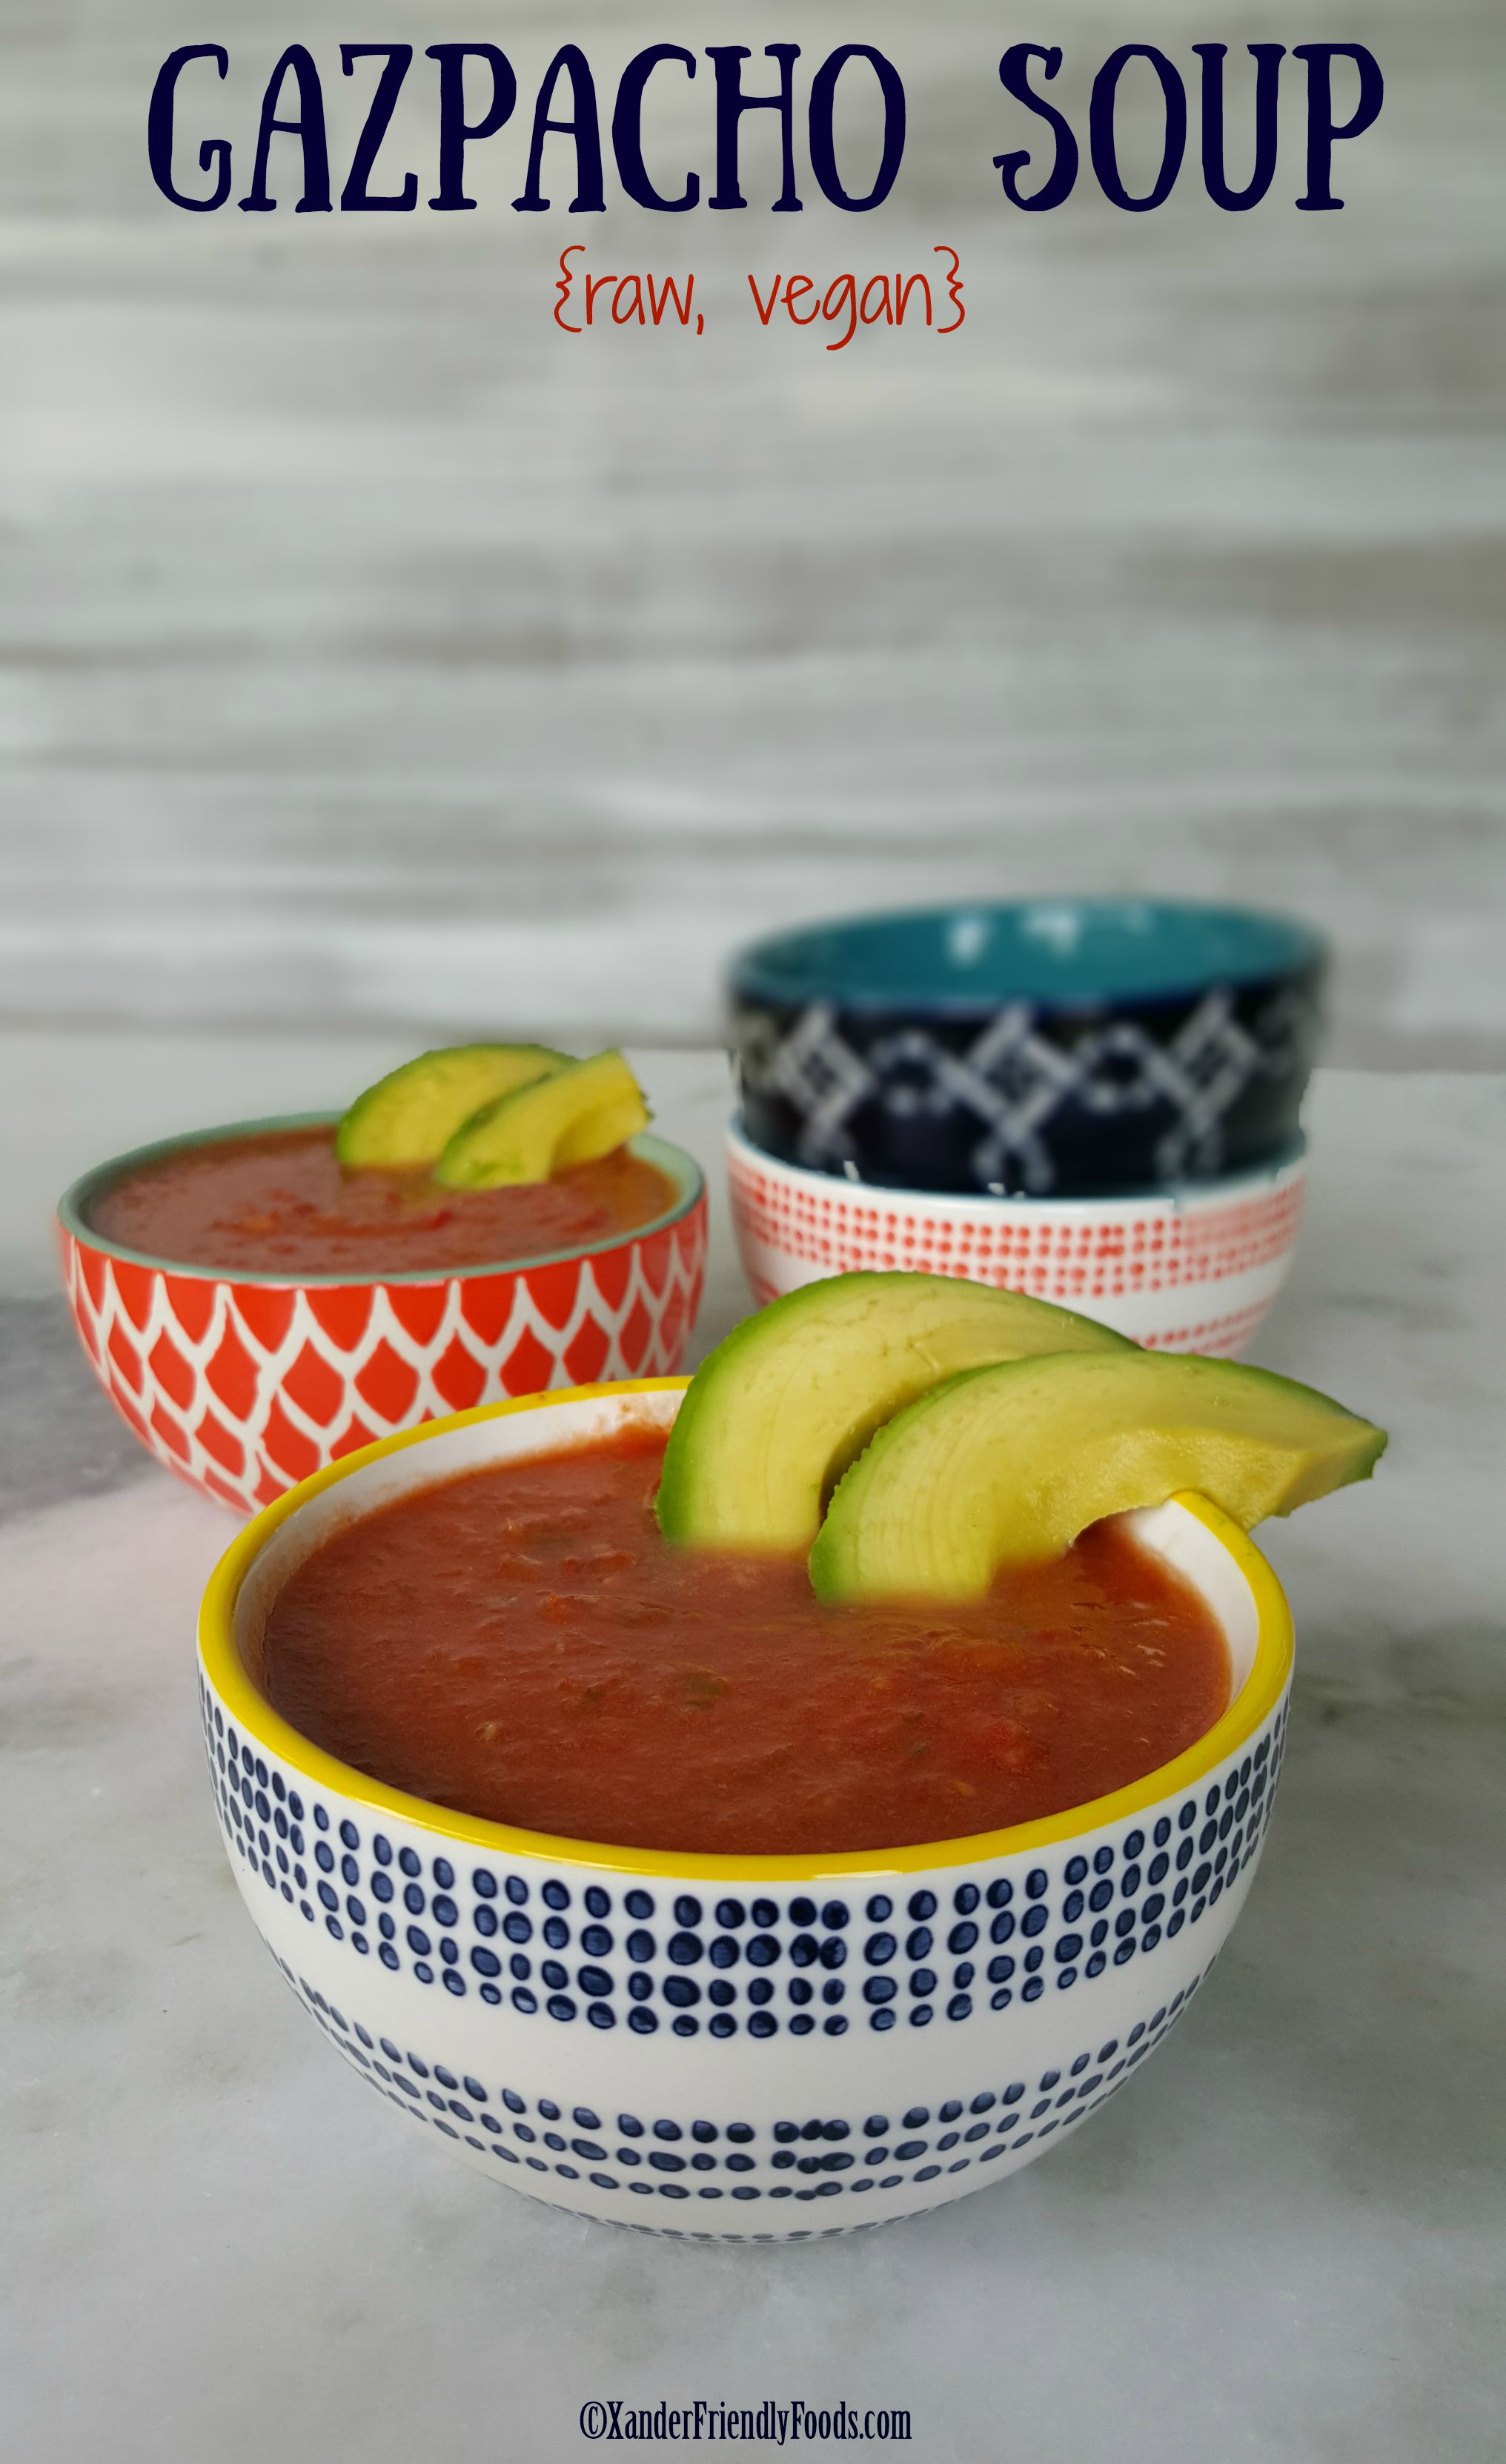 It is a veggie-packed, cold, raw soup that is light and refreshing, and absolutely perfect for the warm summer months.